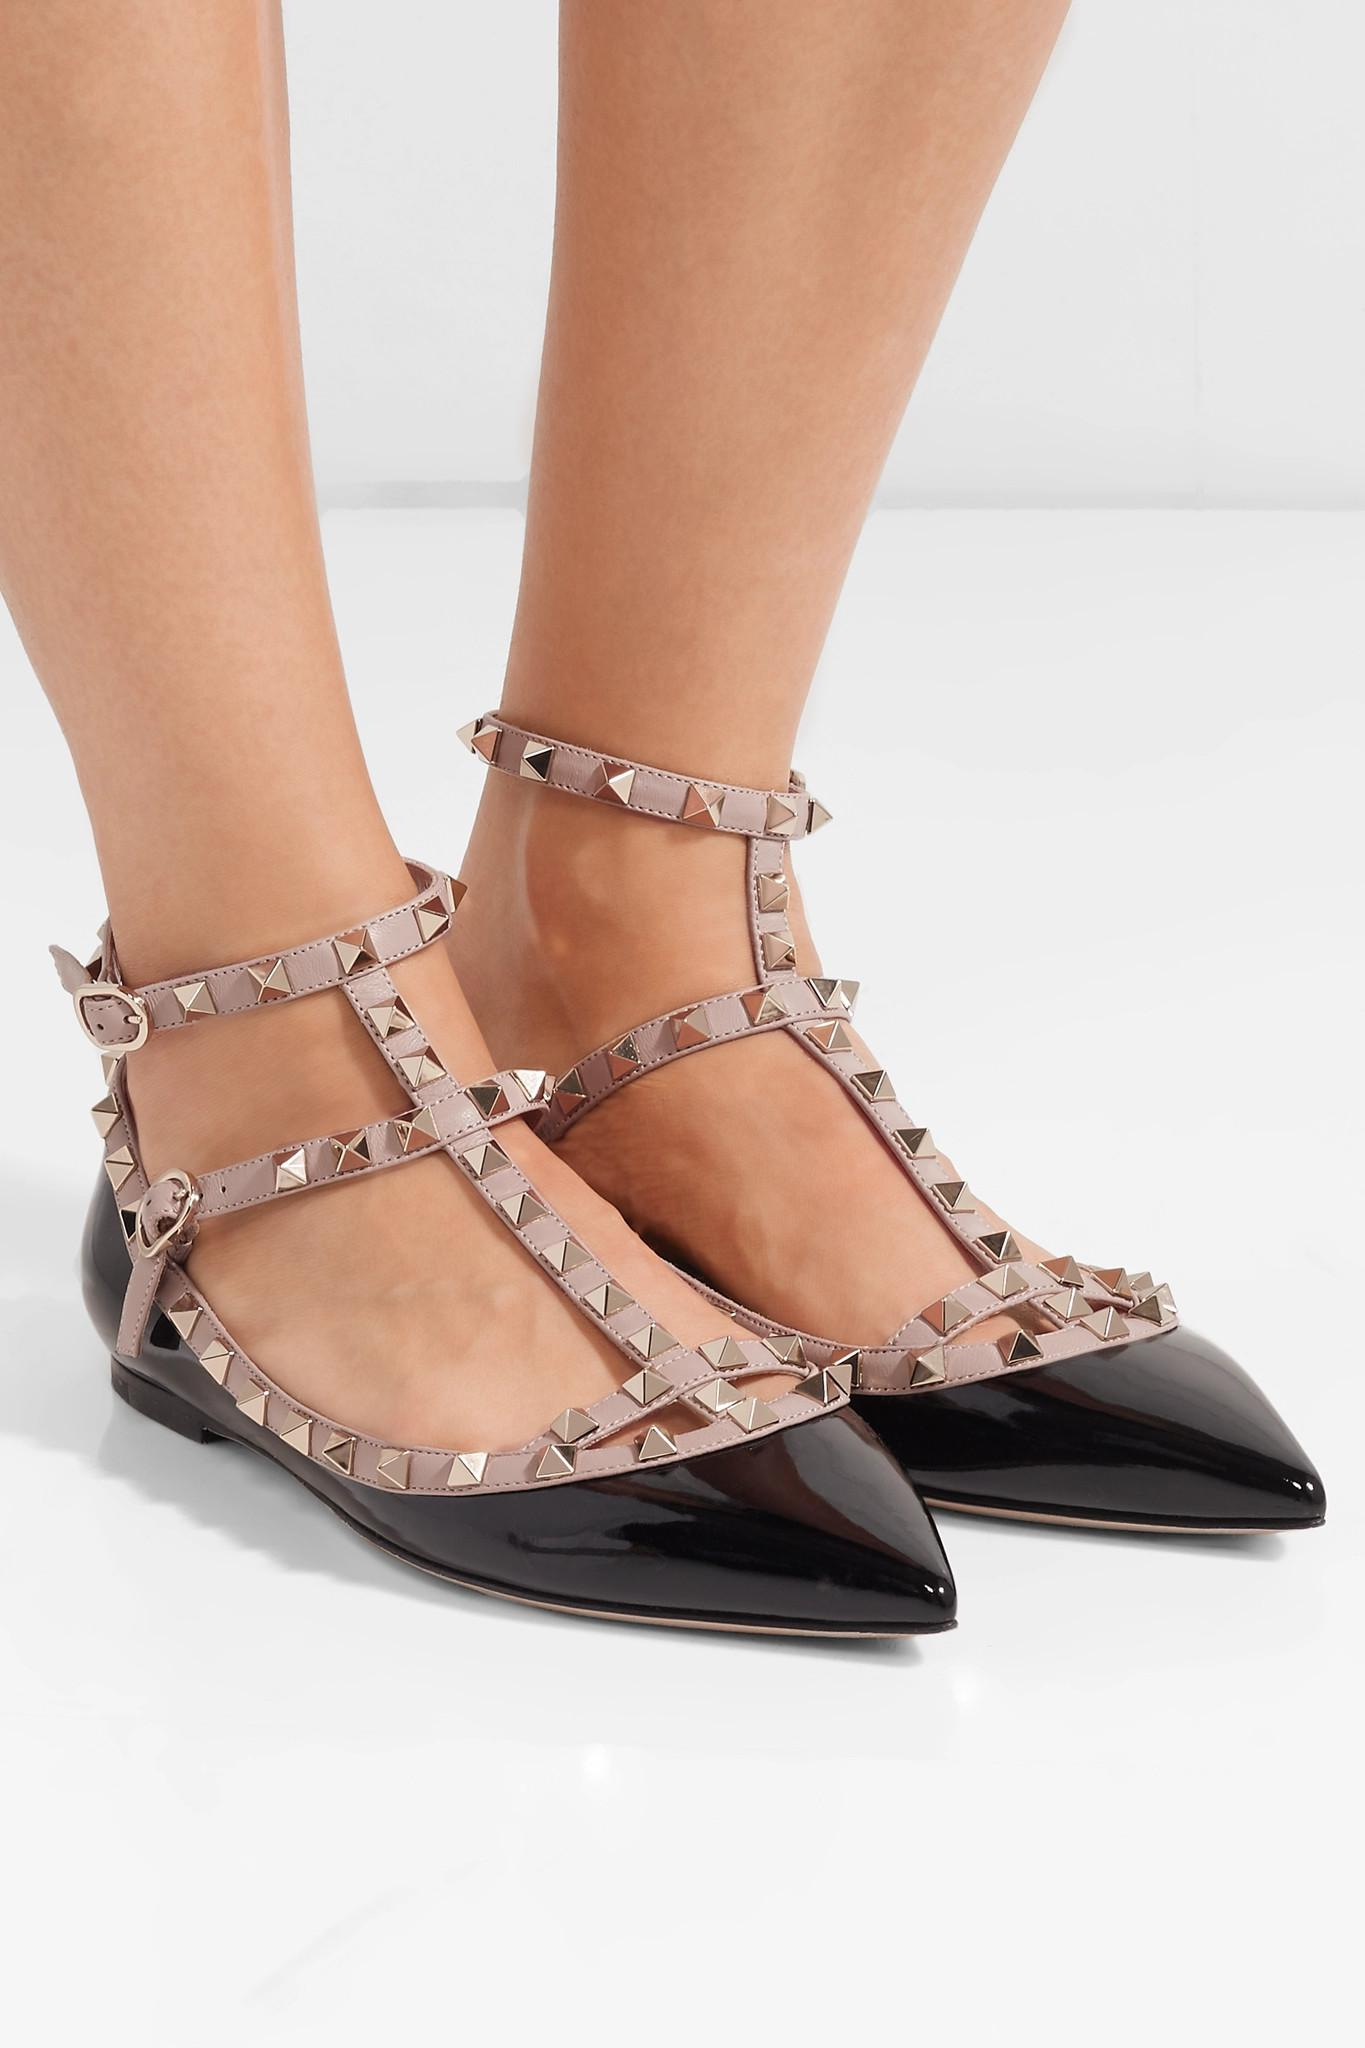 59fe1af331 Valentino Garavani The Rockstud Patent-leather Point-toe Flats in ...